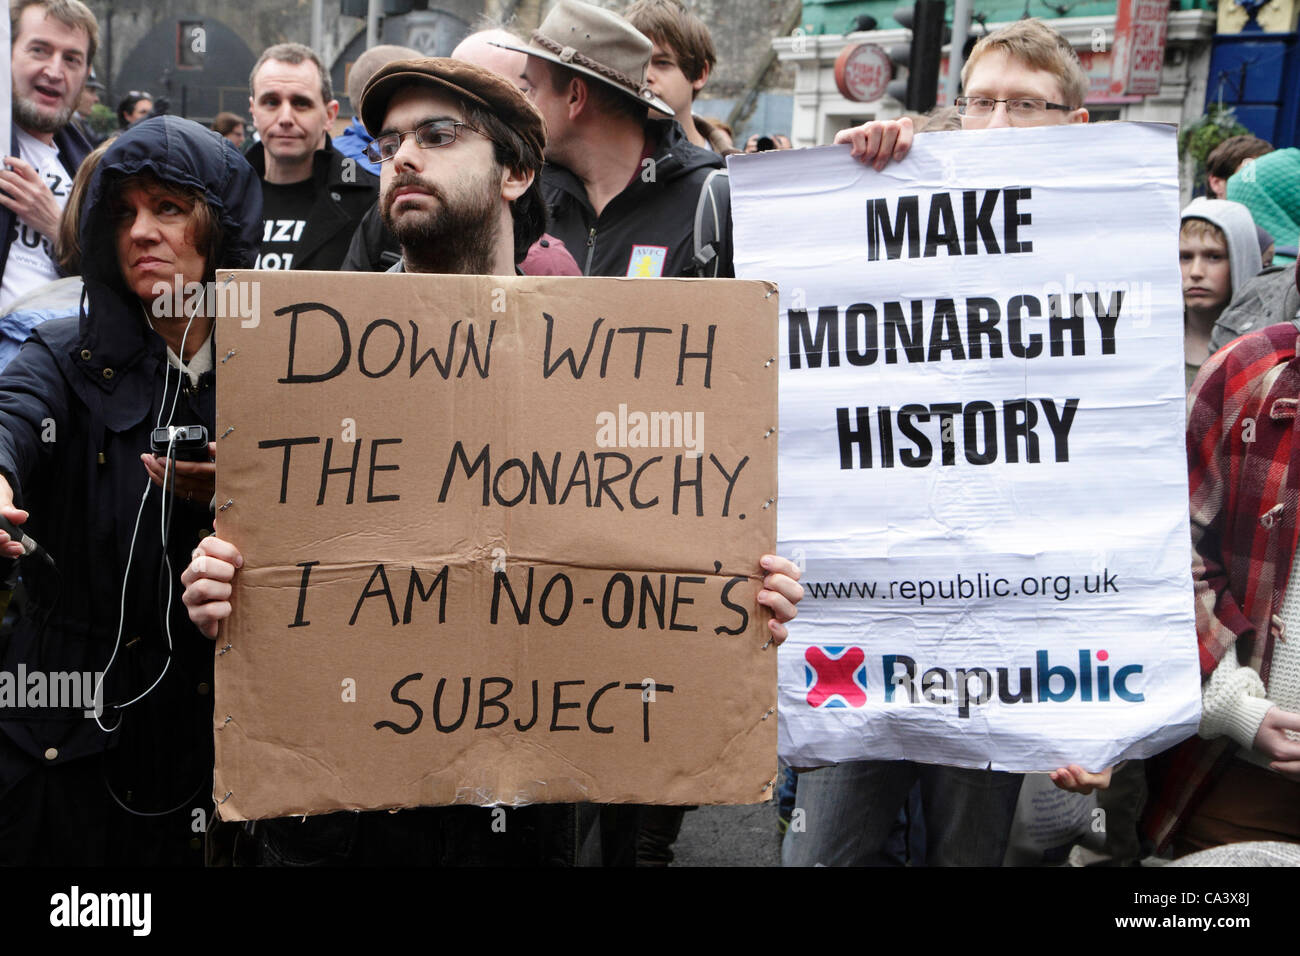 Anti-monarchy demonstrators protest during Diamond Jubilee celebrations. London, UK - Stock Image